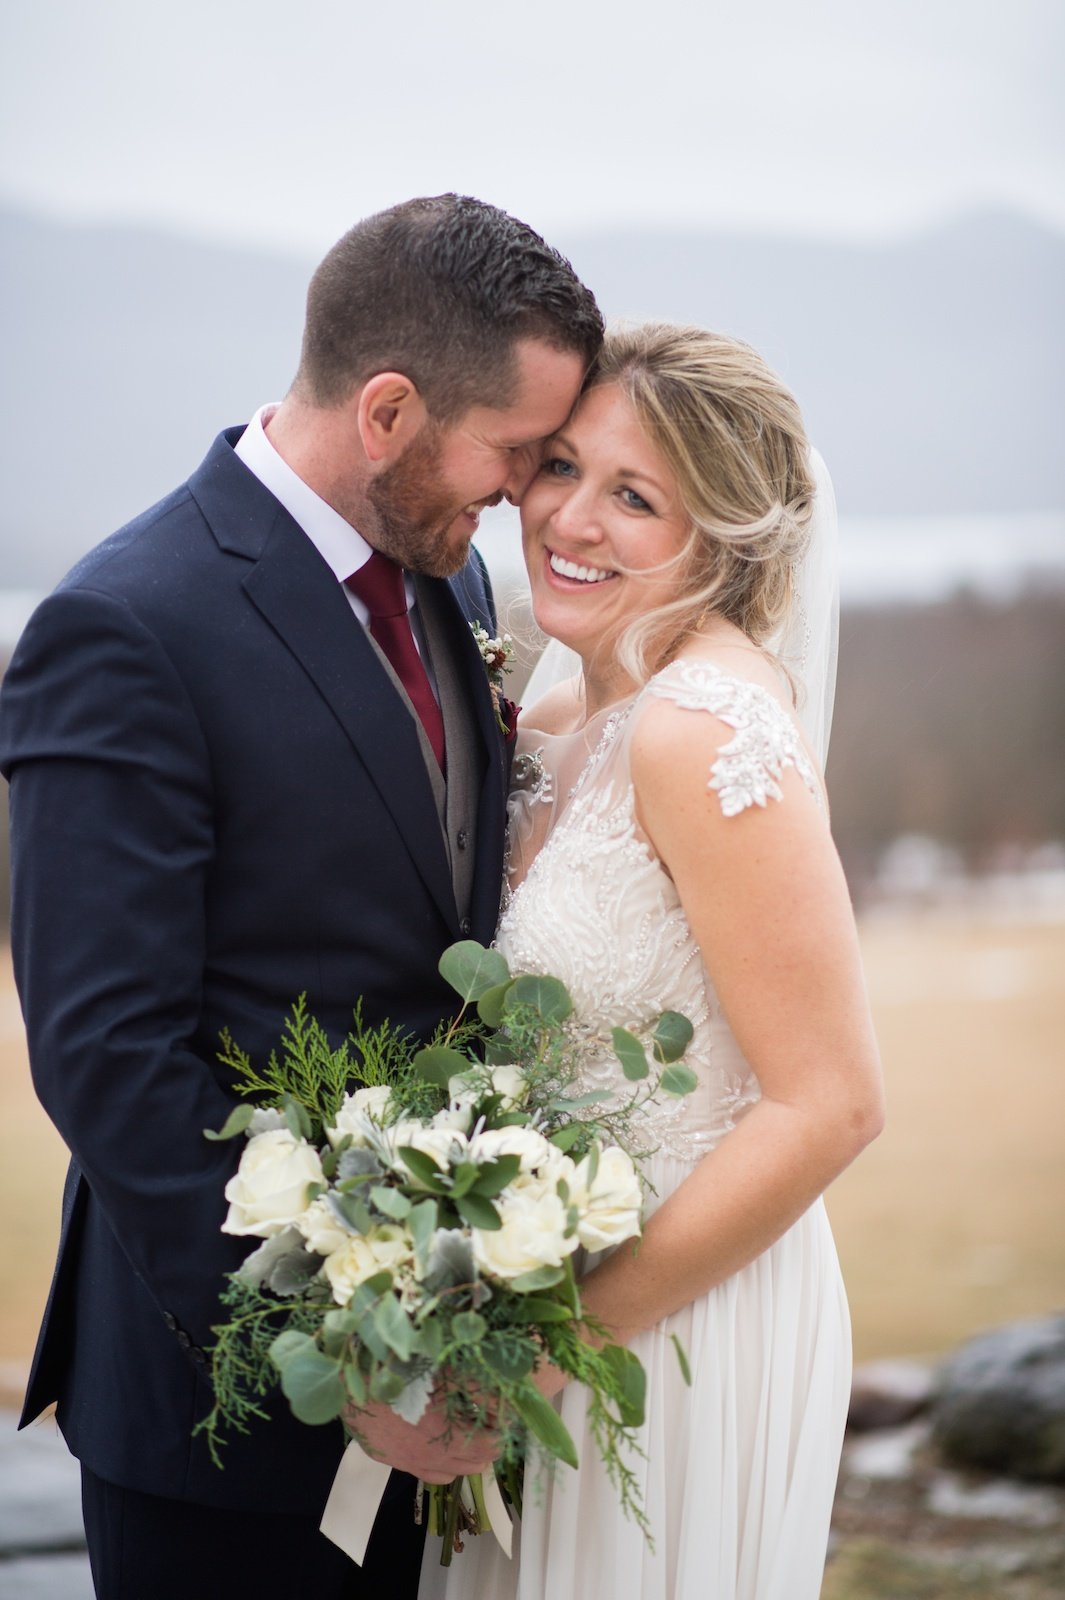 find best Vermont photographer for candid winter wedding in Chittenden, Rutland and Killington 2